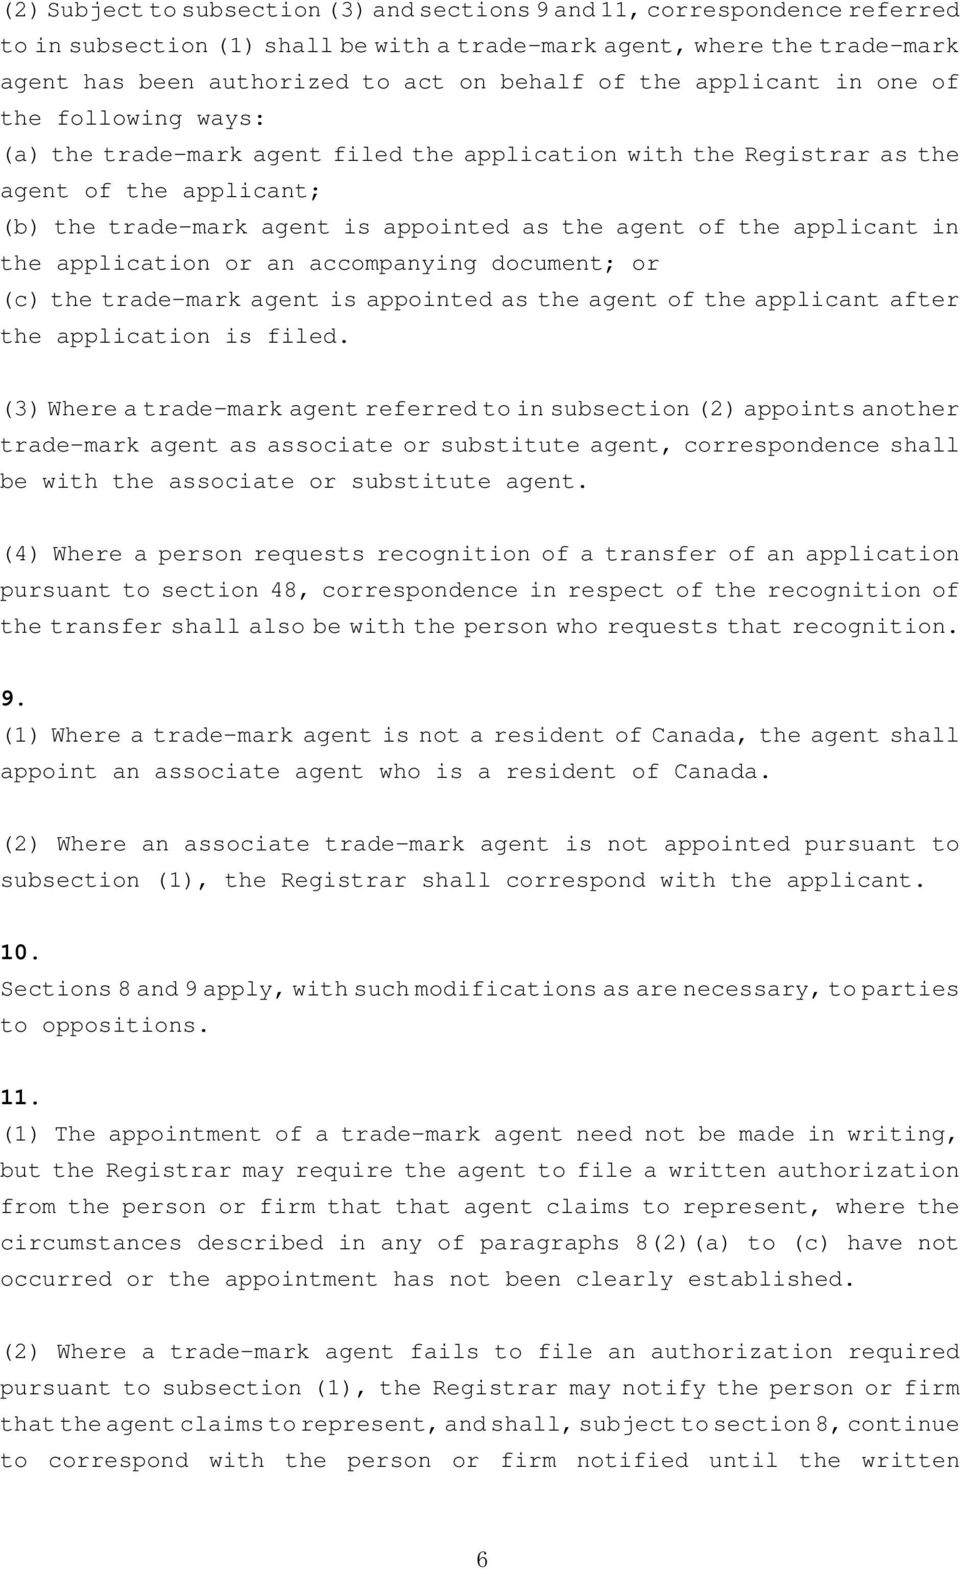 applicant in the application or an accompanying document; or (c) the trade-mark agent is appointed as the agent of the applicant after the application is filed.